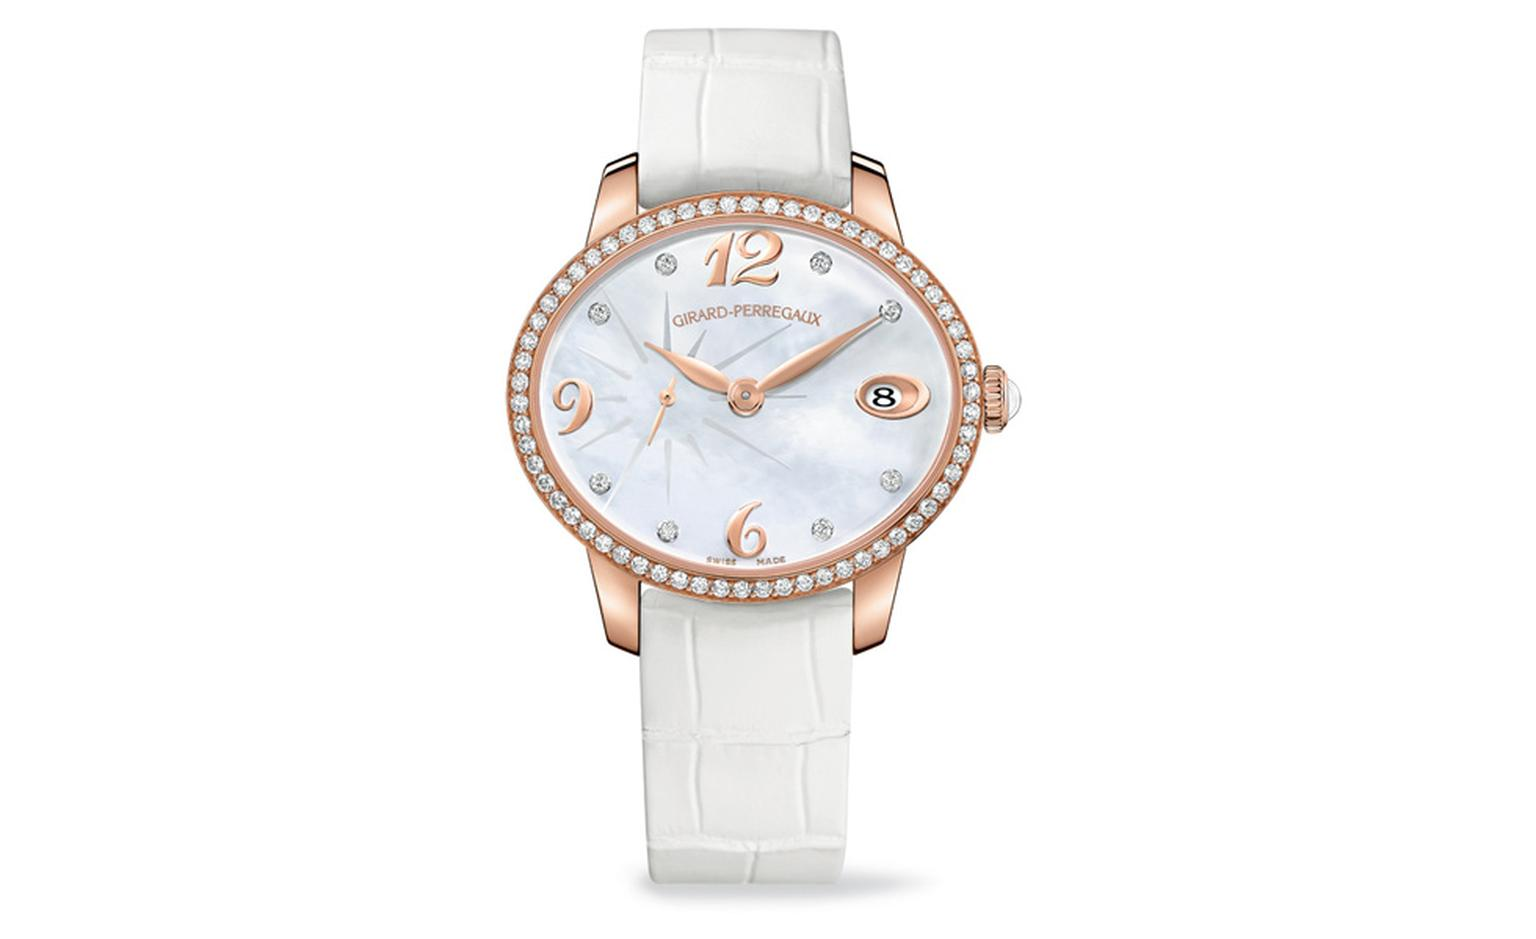 Girard-Perregaux Cat's Eye automatic watch in rose gold with mother of pearl dial.